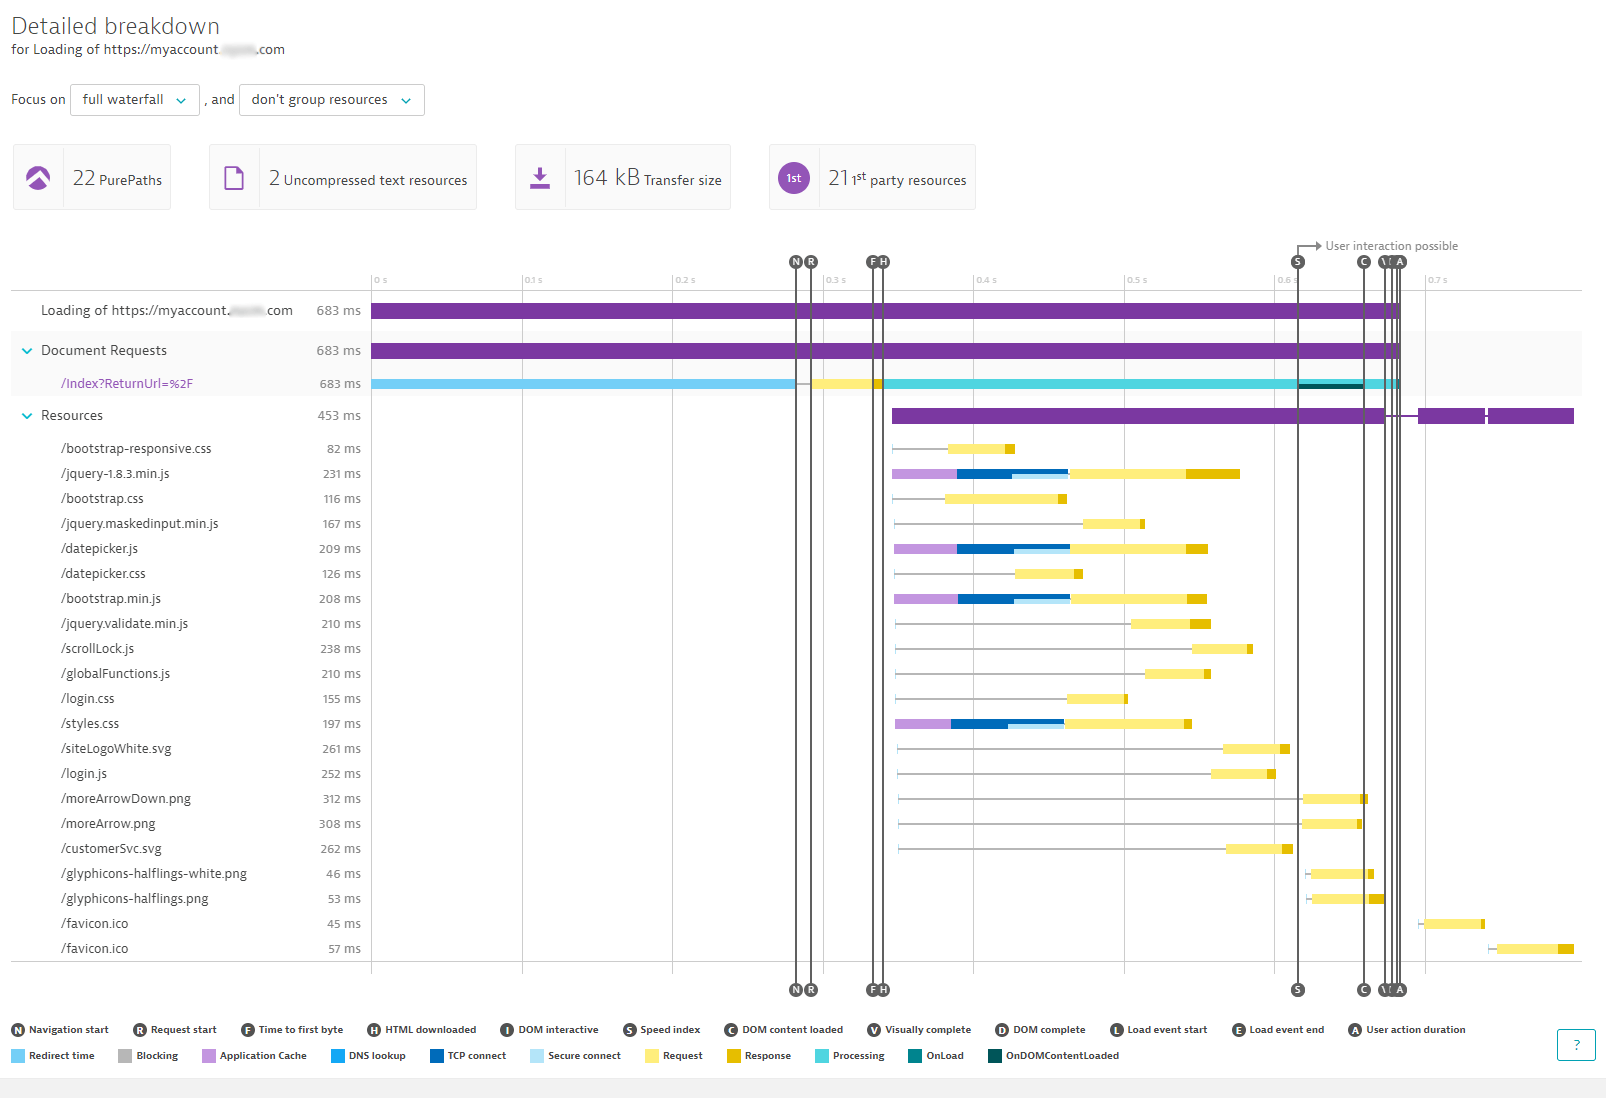 Dynatrace provides detailed web performance waterfall breakdowns including top findings that can be addressed immediately by developers.